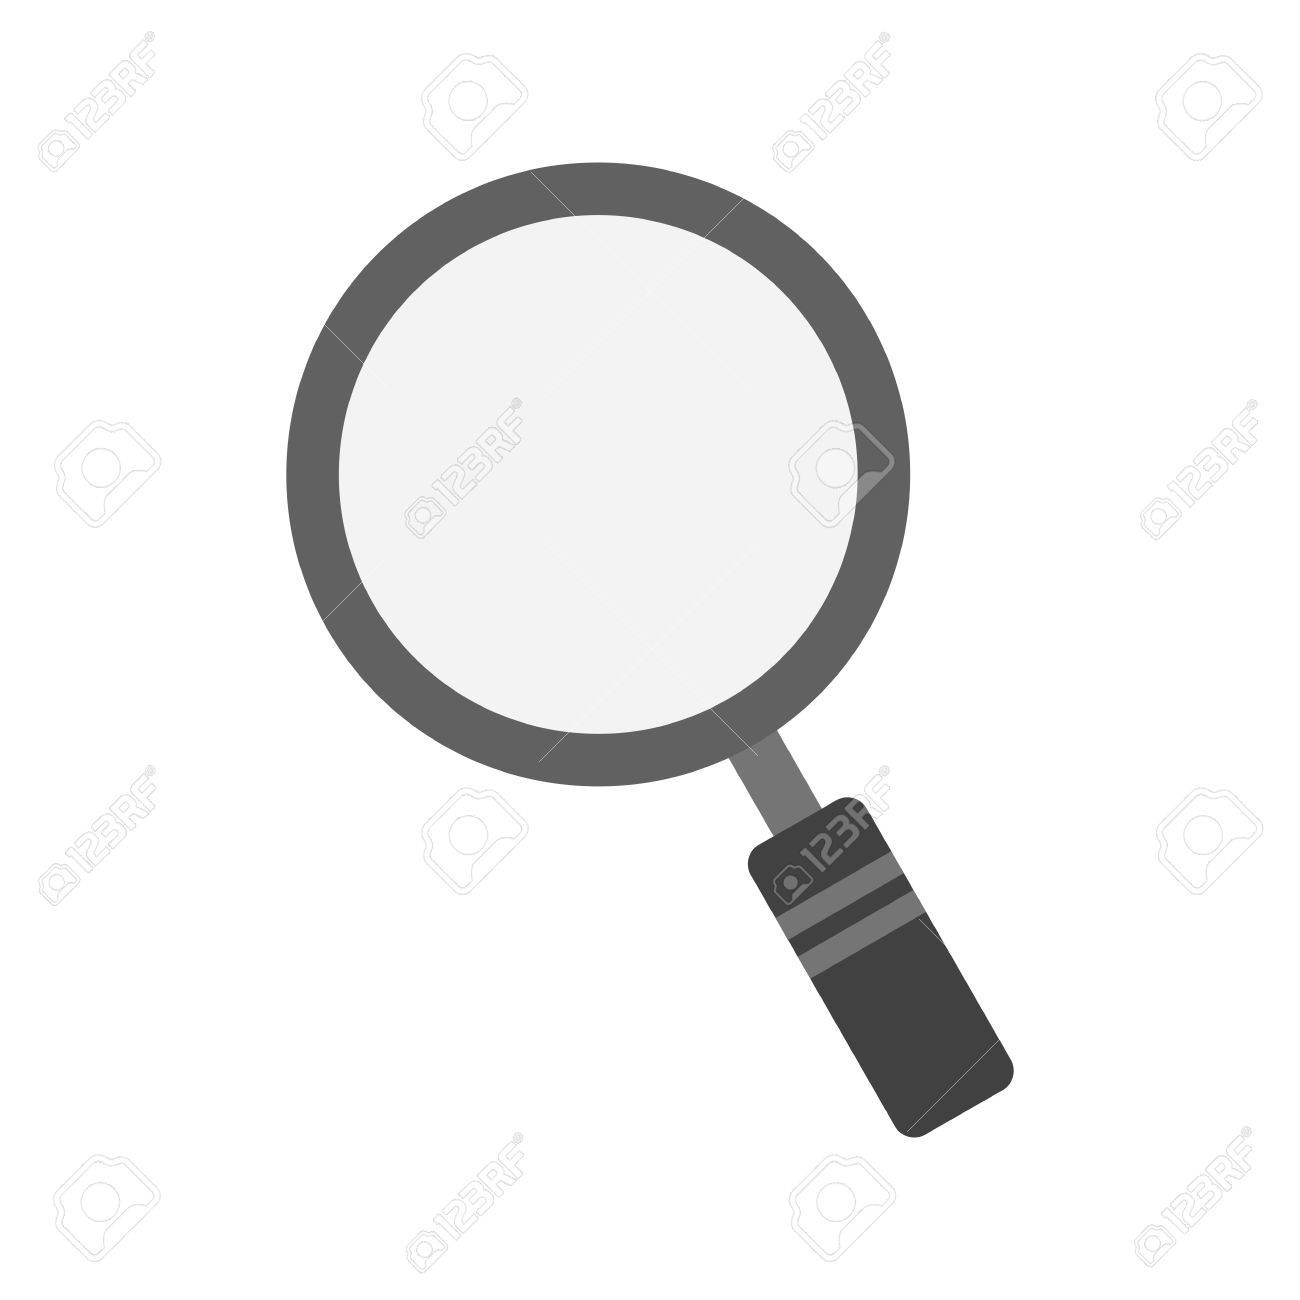 Search, find, google icon vector image Can also be used for user